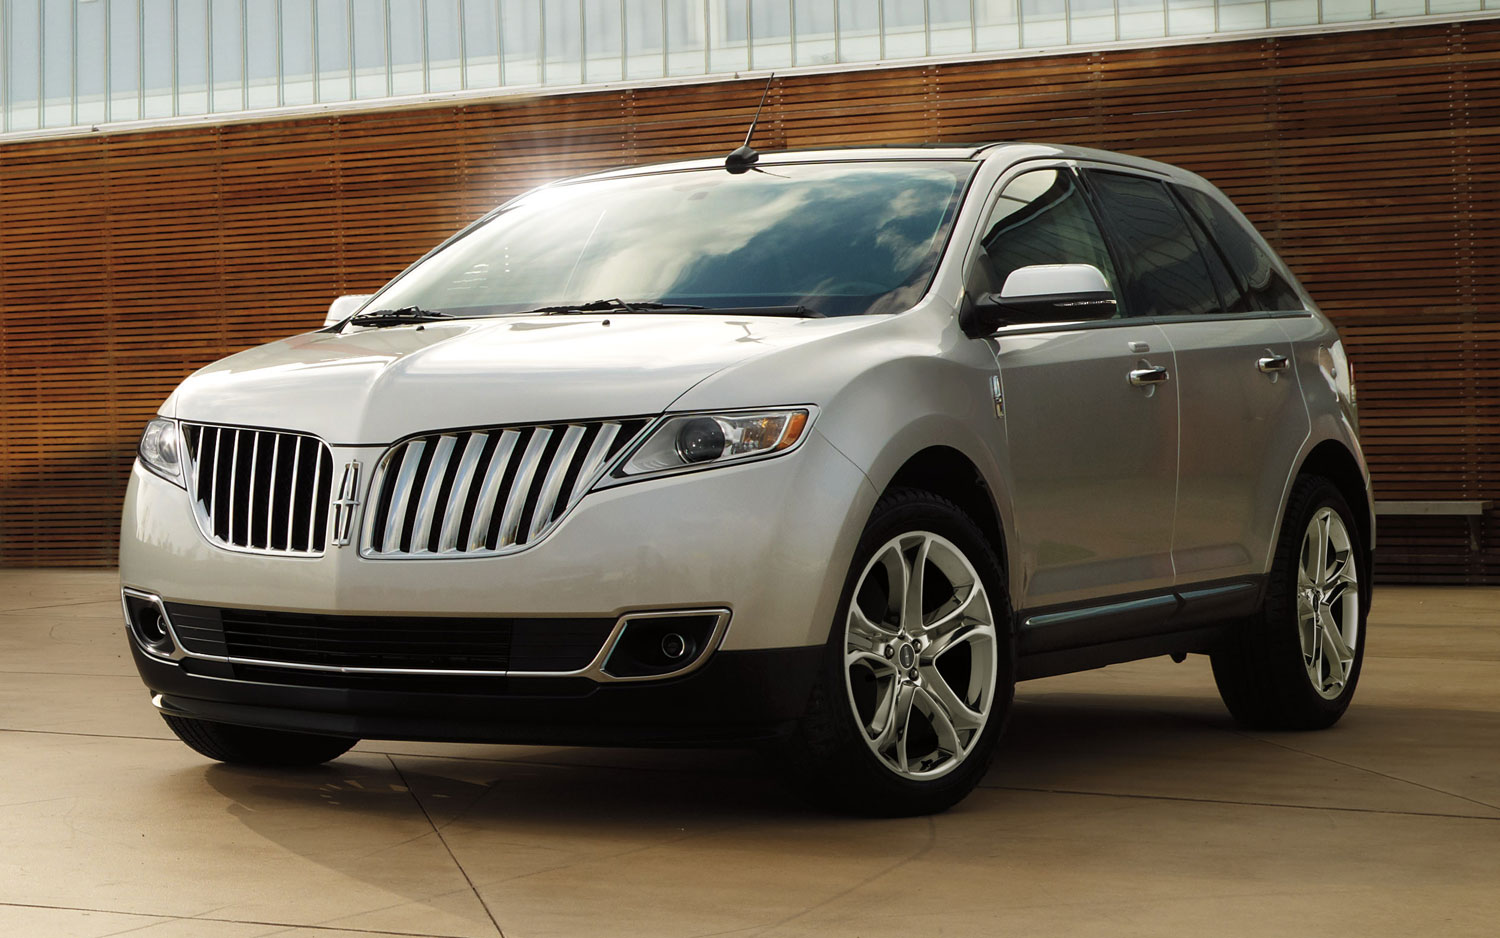 2013 Lincoln MKX Front View11